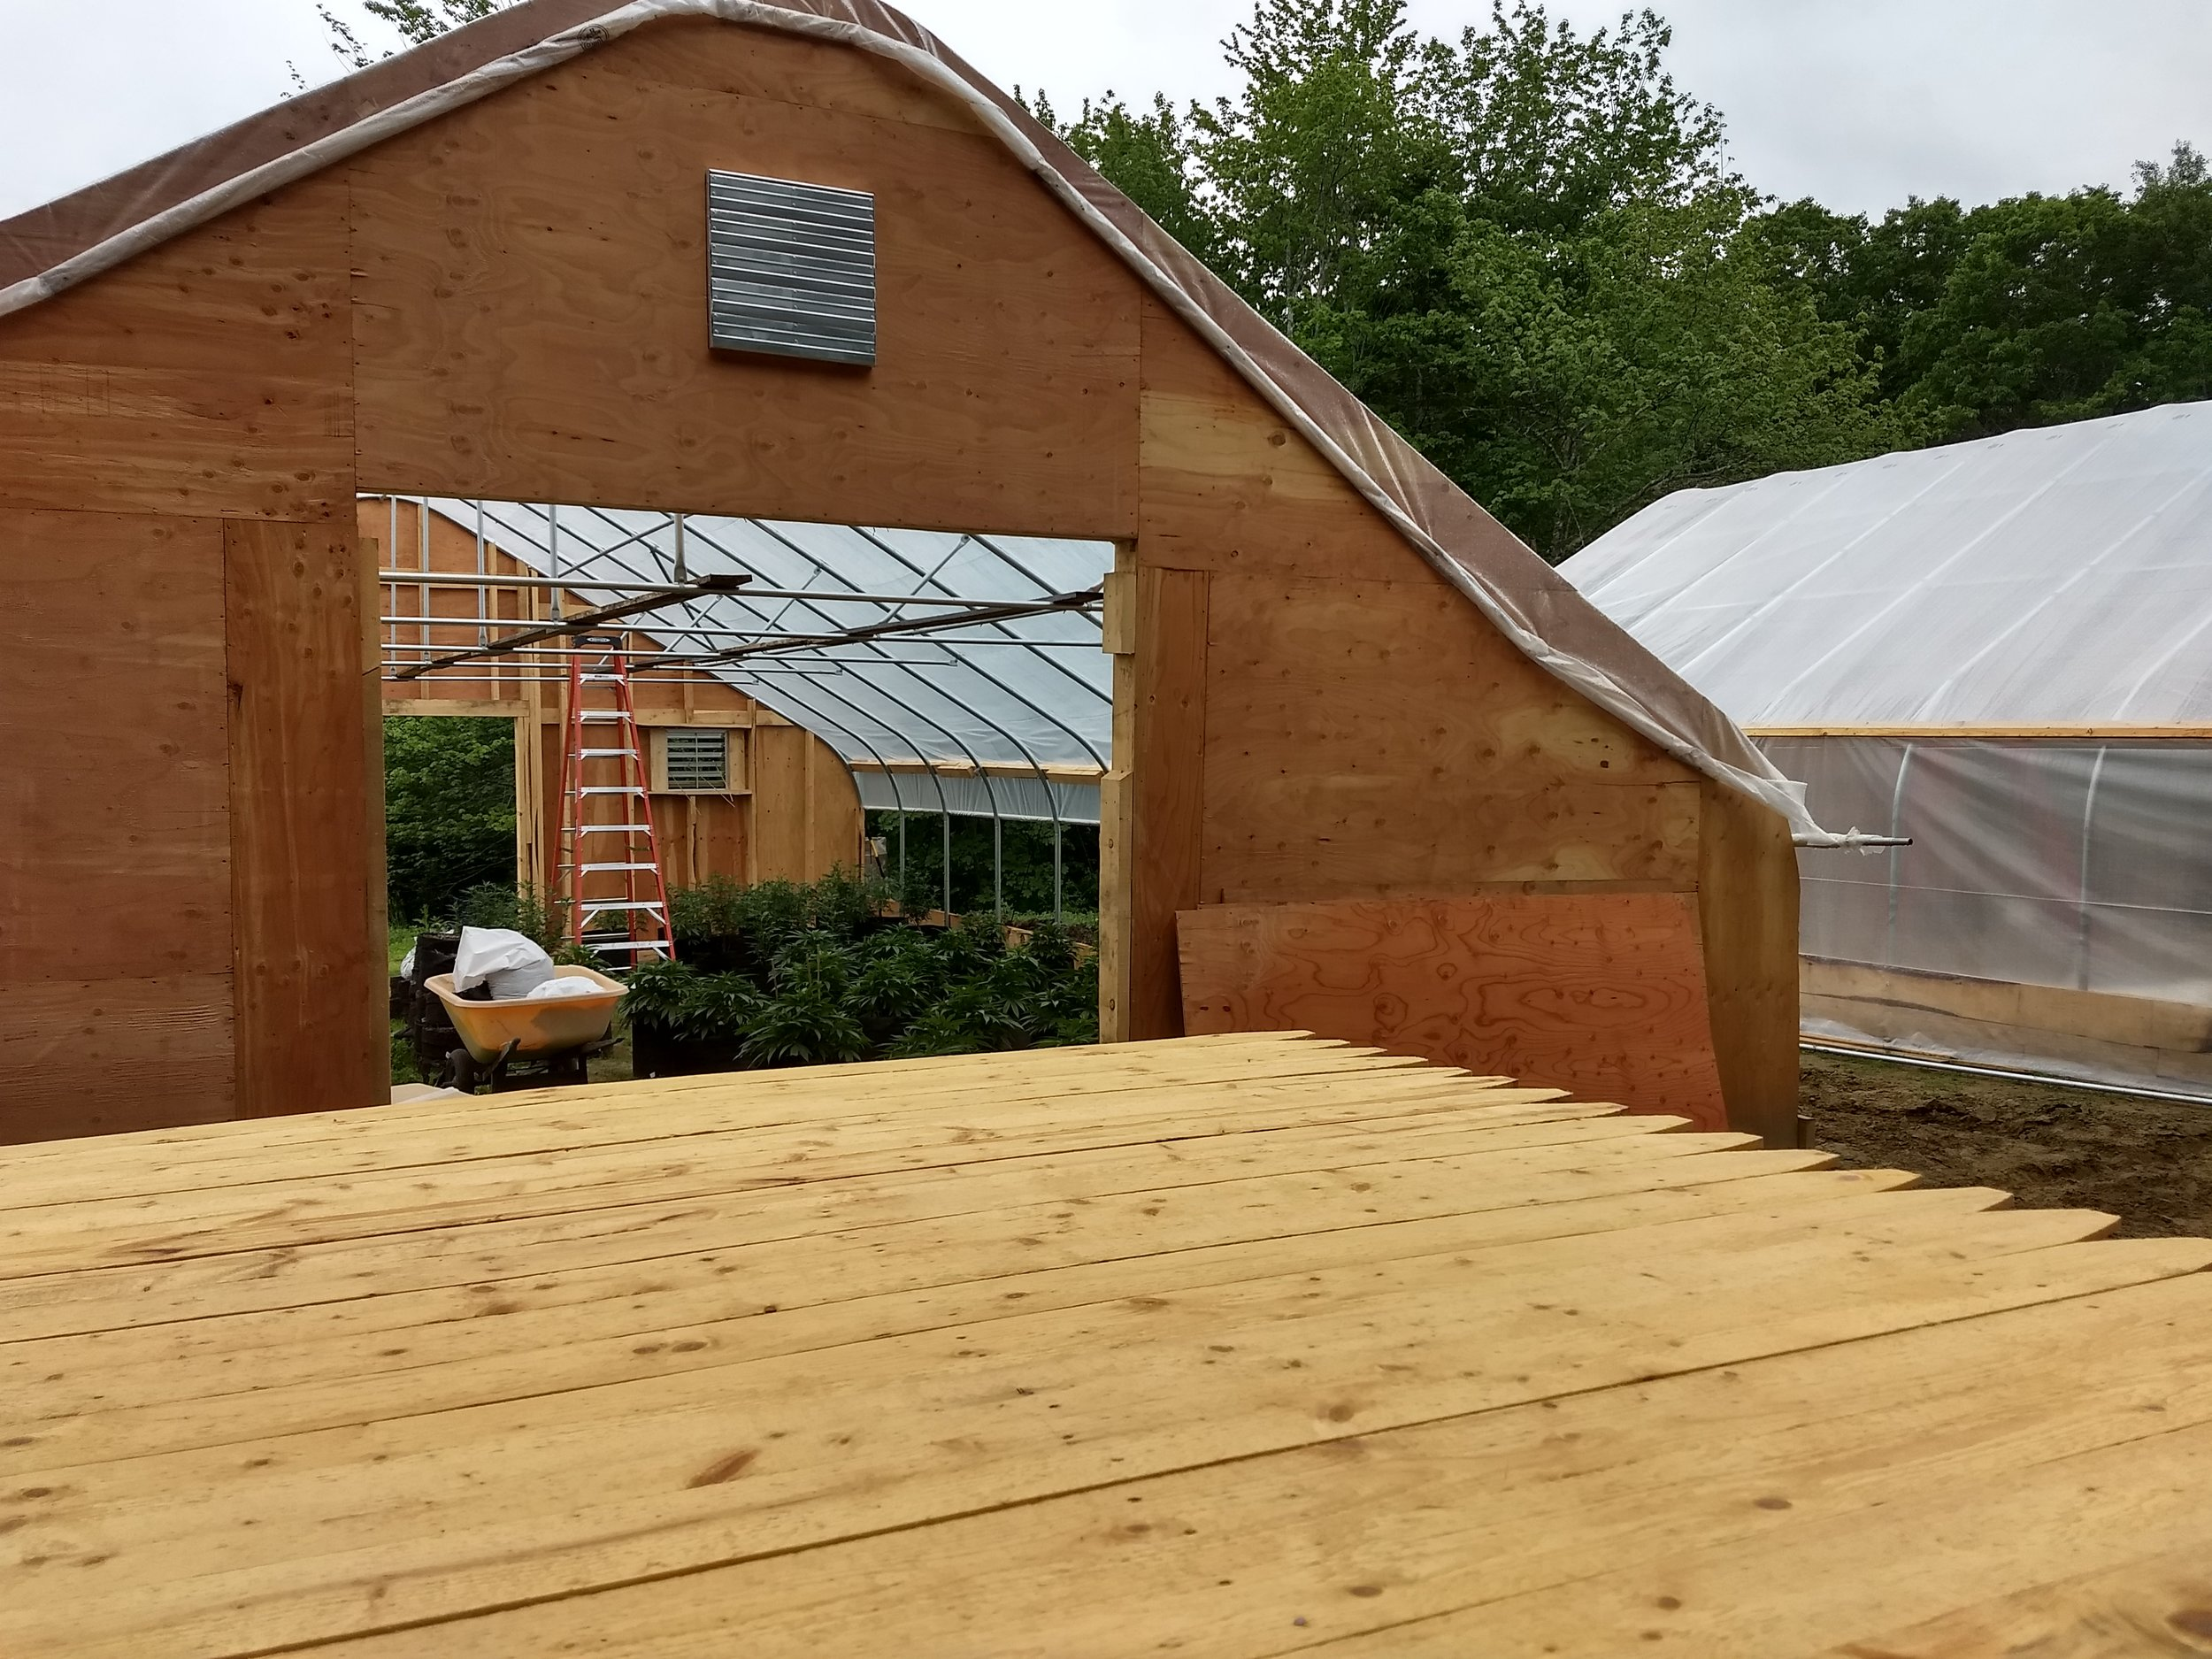 Greenhouses are a go! - We finished construction on both greenhouses and have fans already added. CMP came out and installed the box. We now have electricity and starting on the fence.